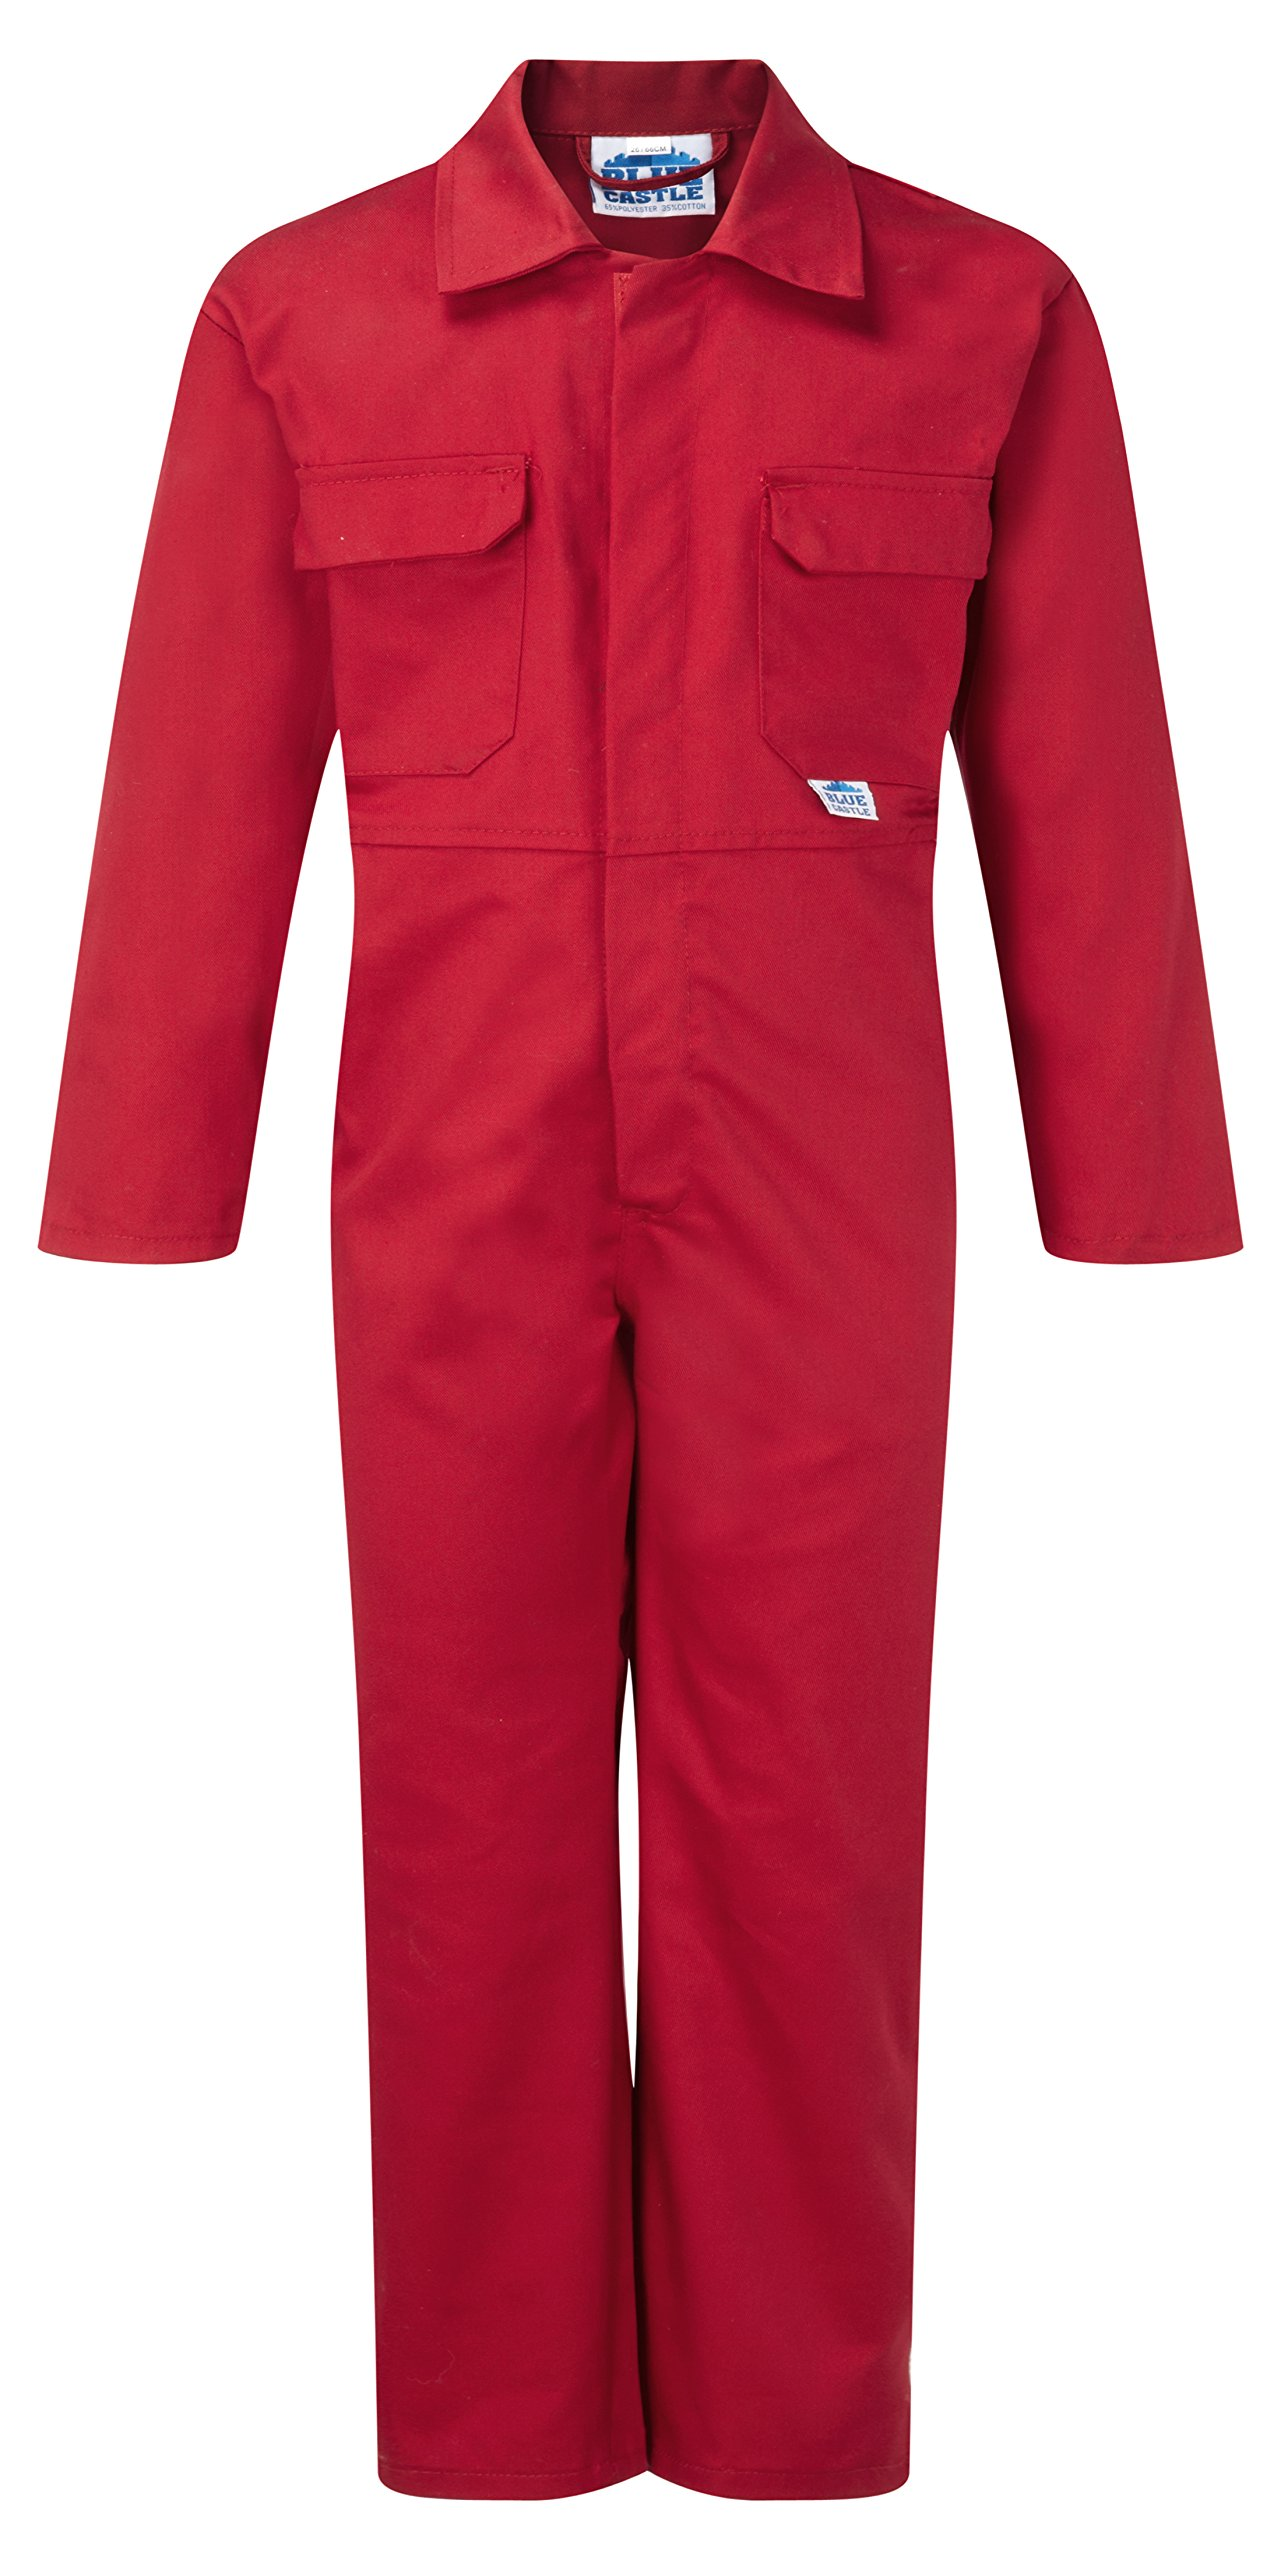 "Castle Clothing Children's Coveralls - Red (Chest Size = 20"")"